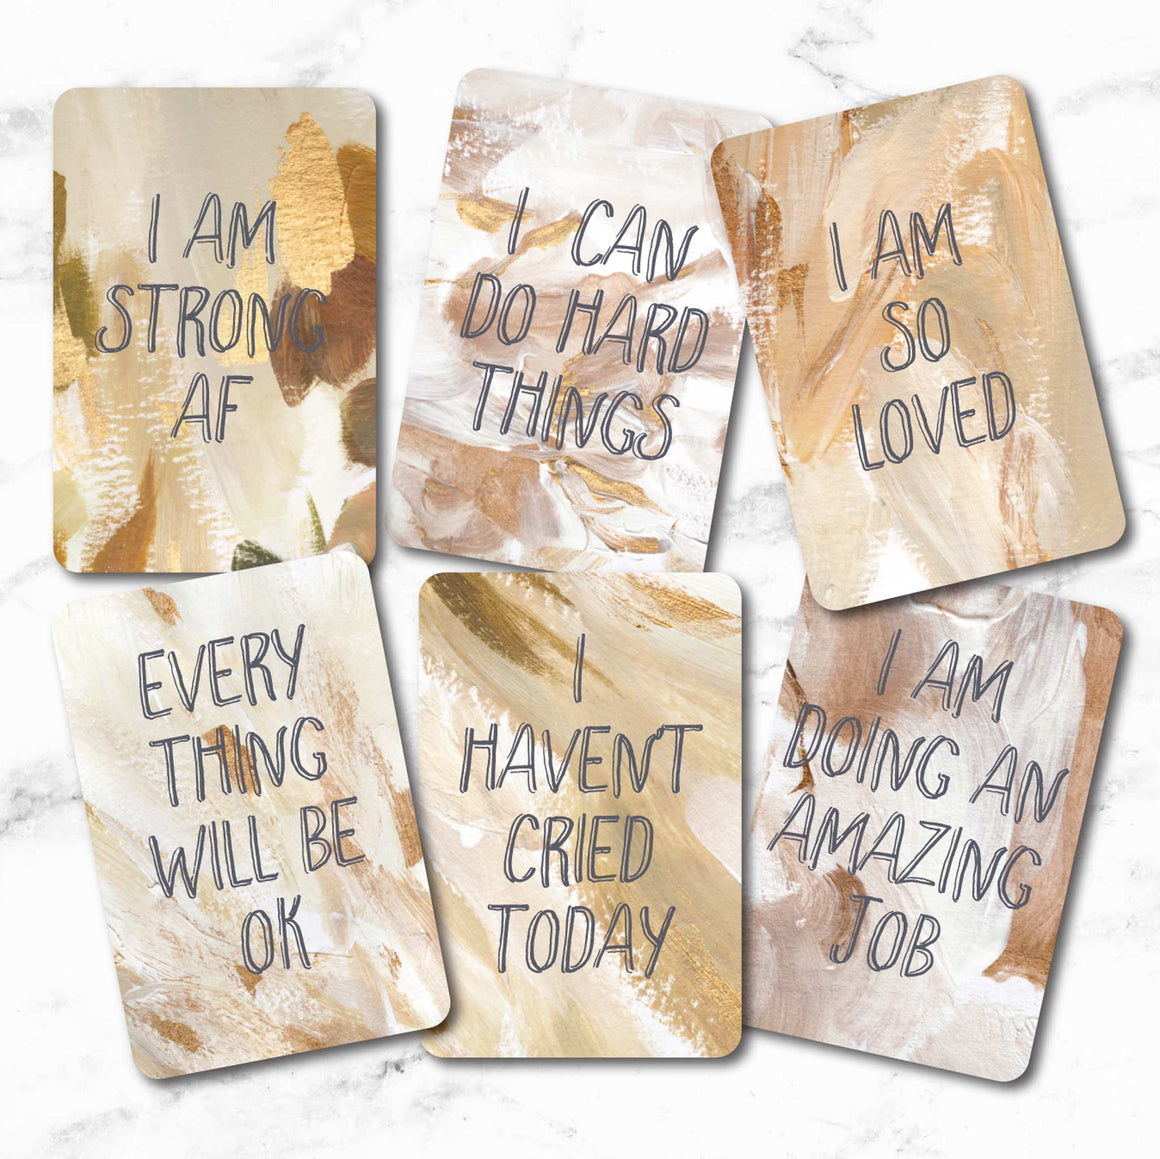 Daily Affirmation Cards | Deck of 18 Uplifting Cards